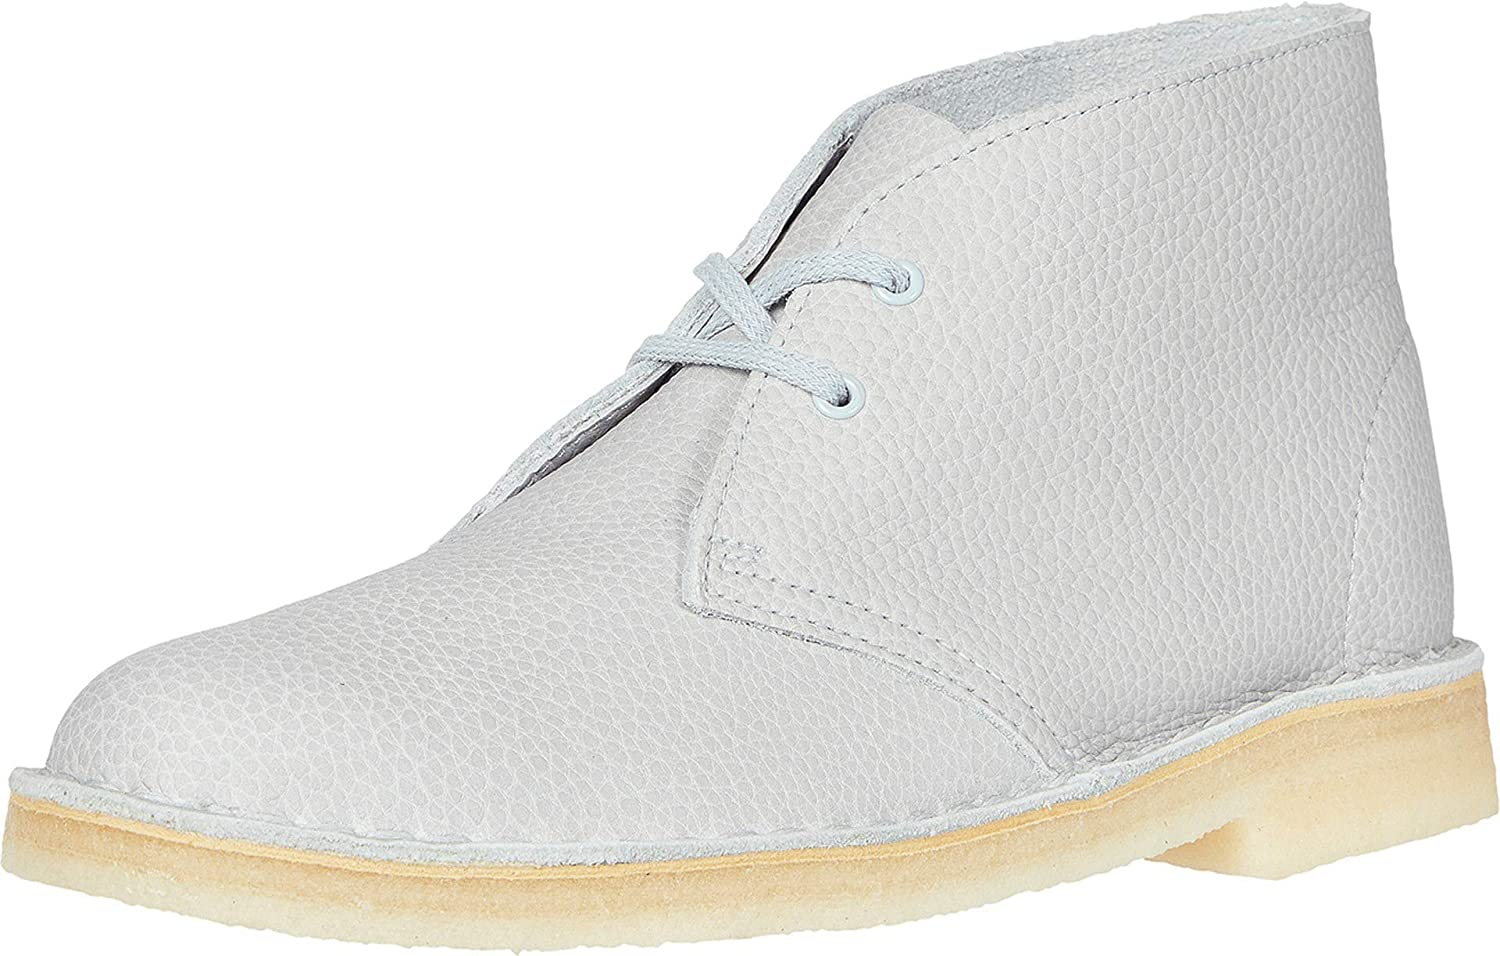 Clarks Women's Desert sale Boot Bootie Limited time cheap sale Ankle